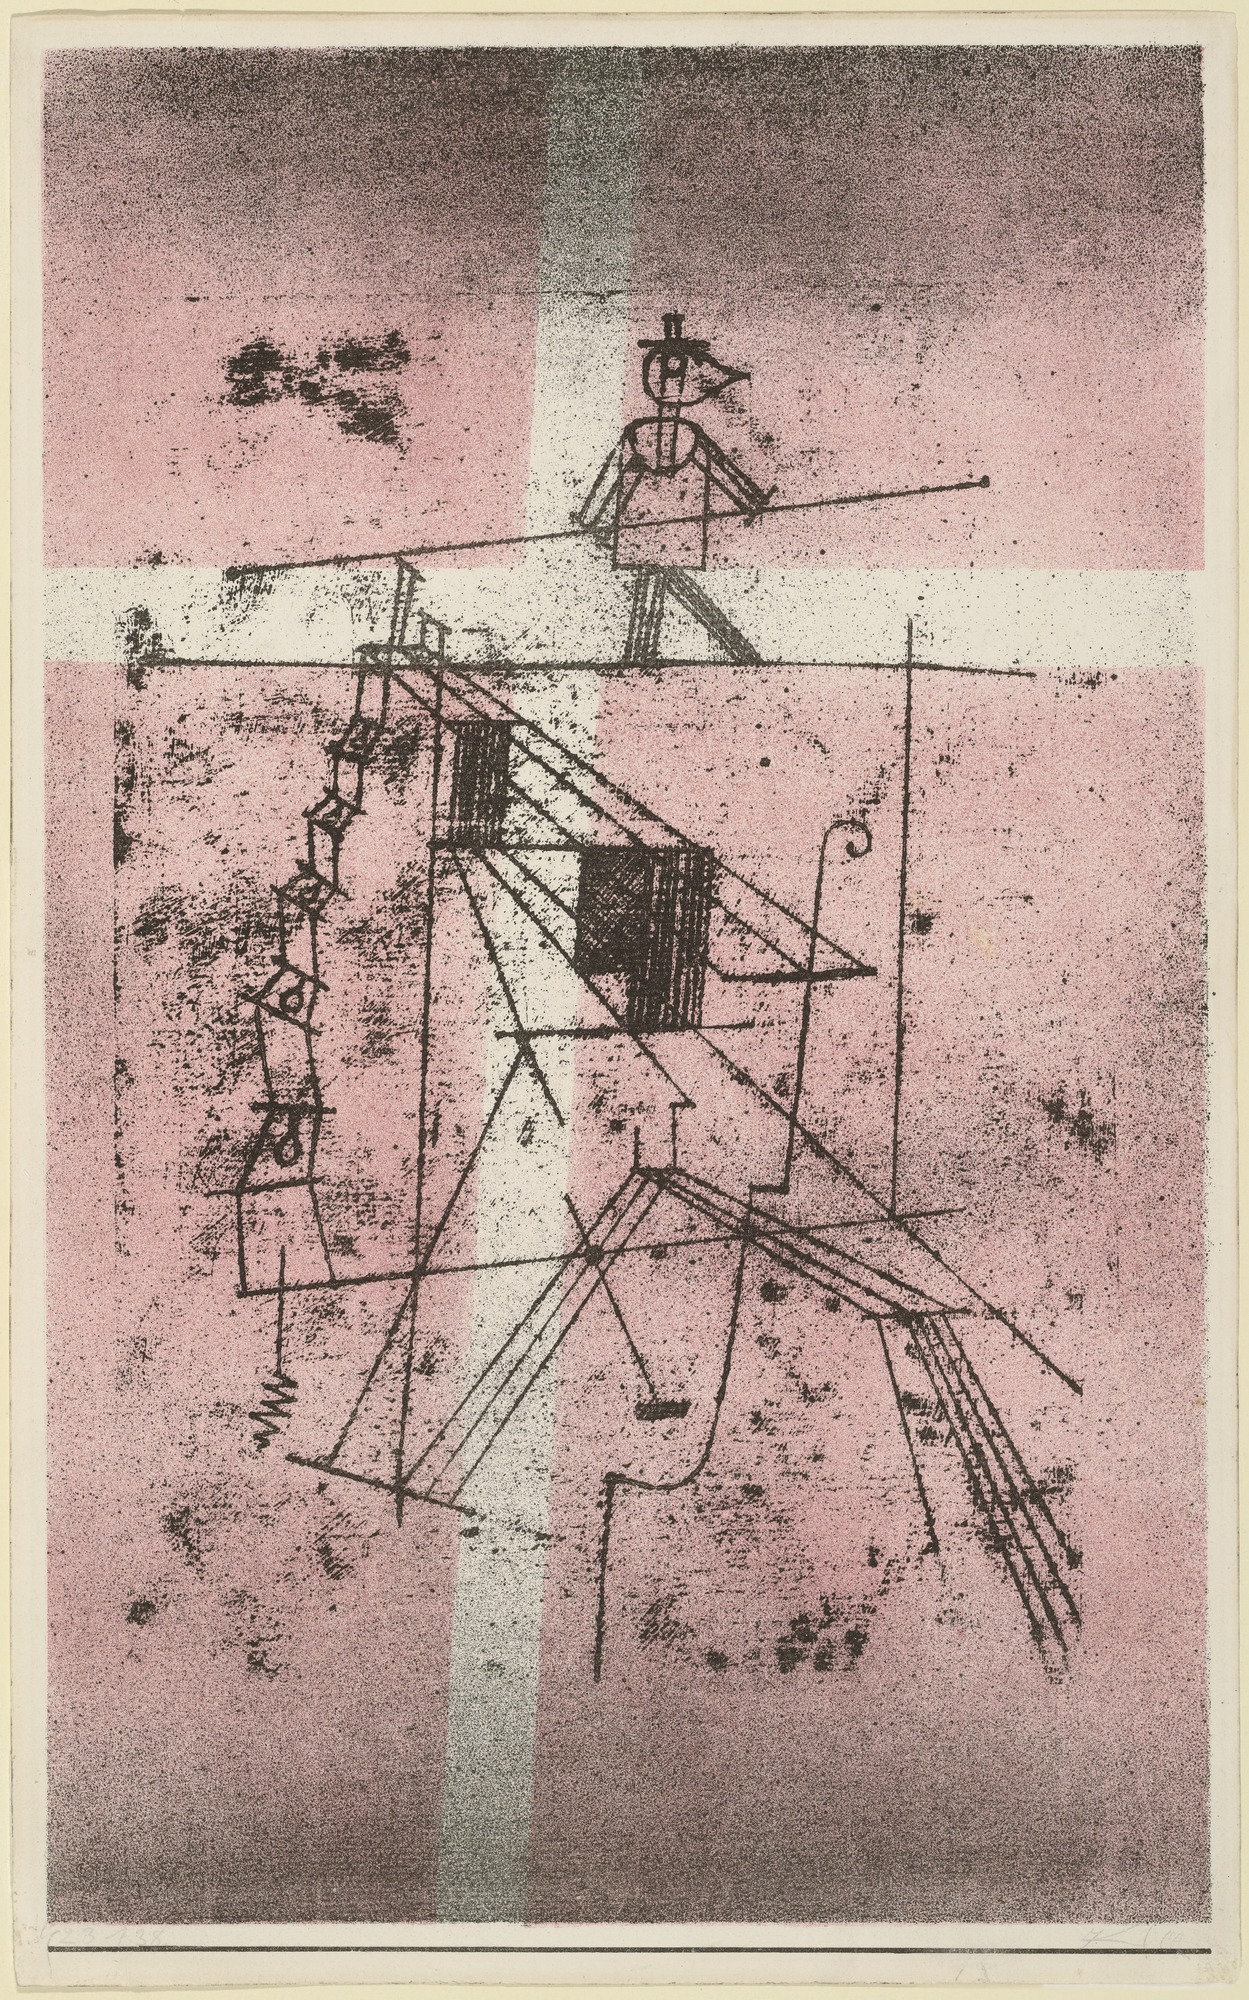 Die Kunst Moma The Collection Paul Klee Tightrope Walker Seiltänzer